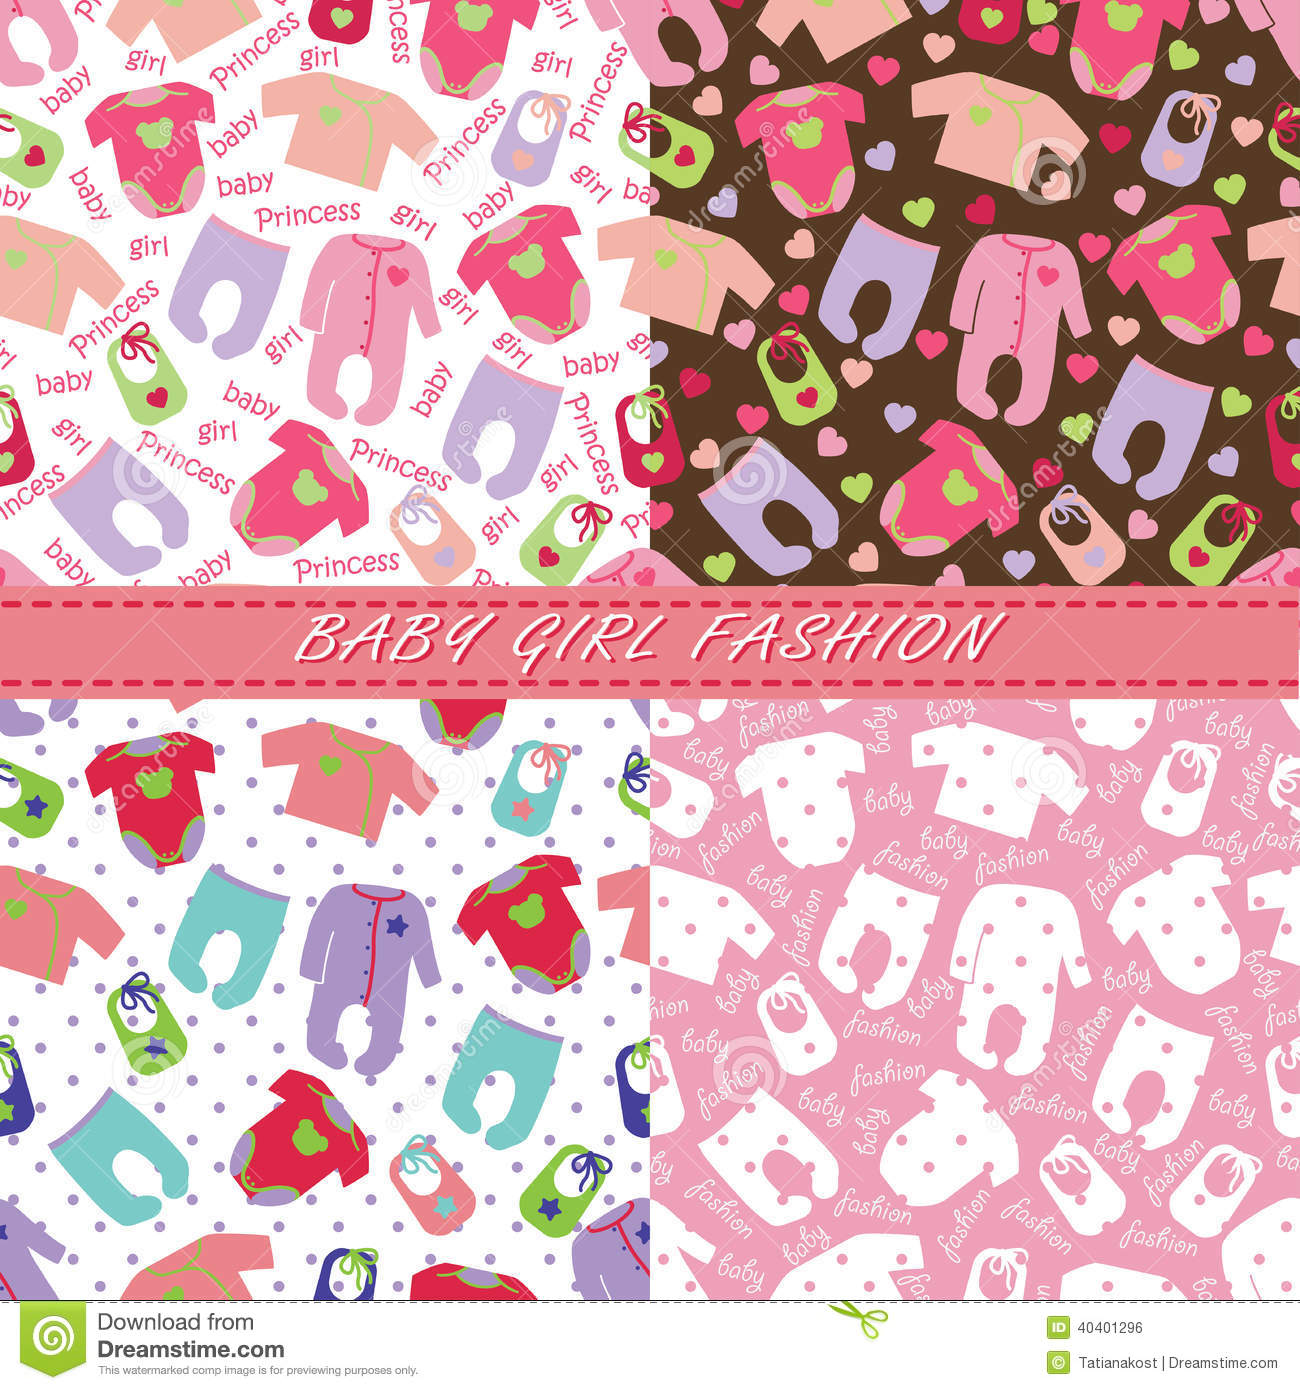 2cc45273b079 Clothes For Newborn Baby Girl In Seamless Pattern Set Stock Vector ...